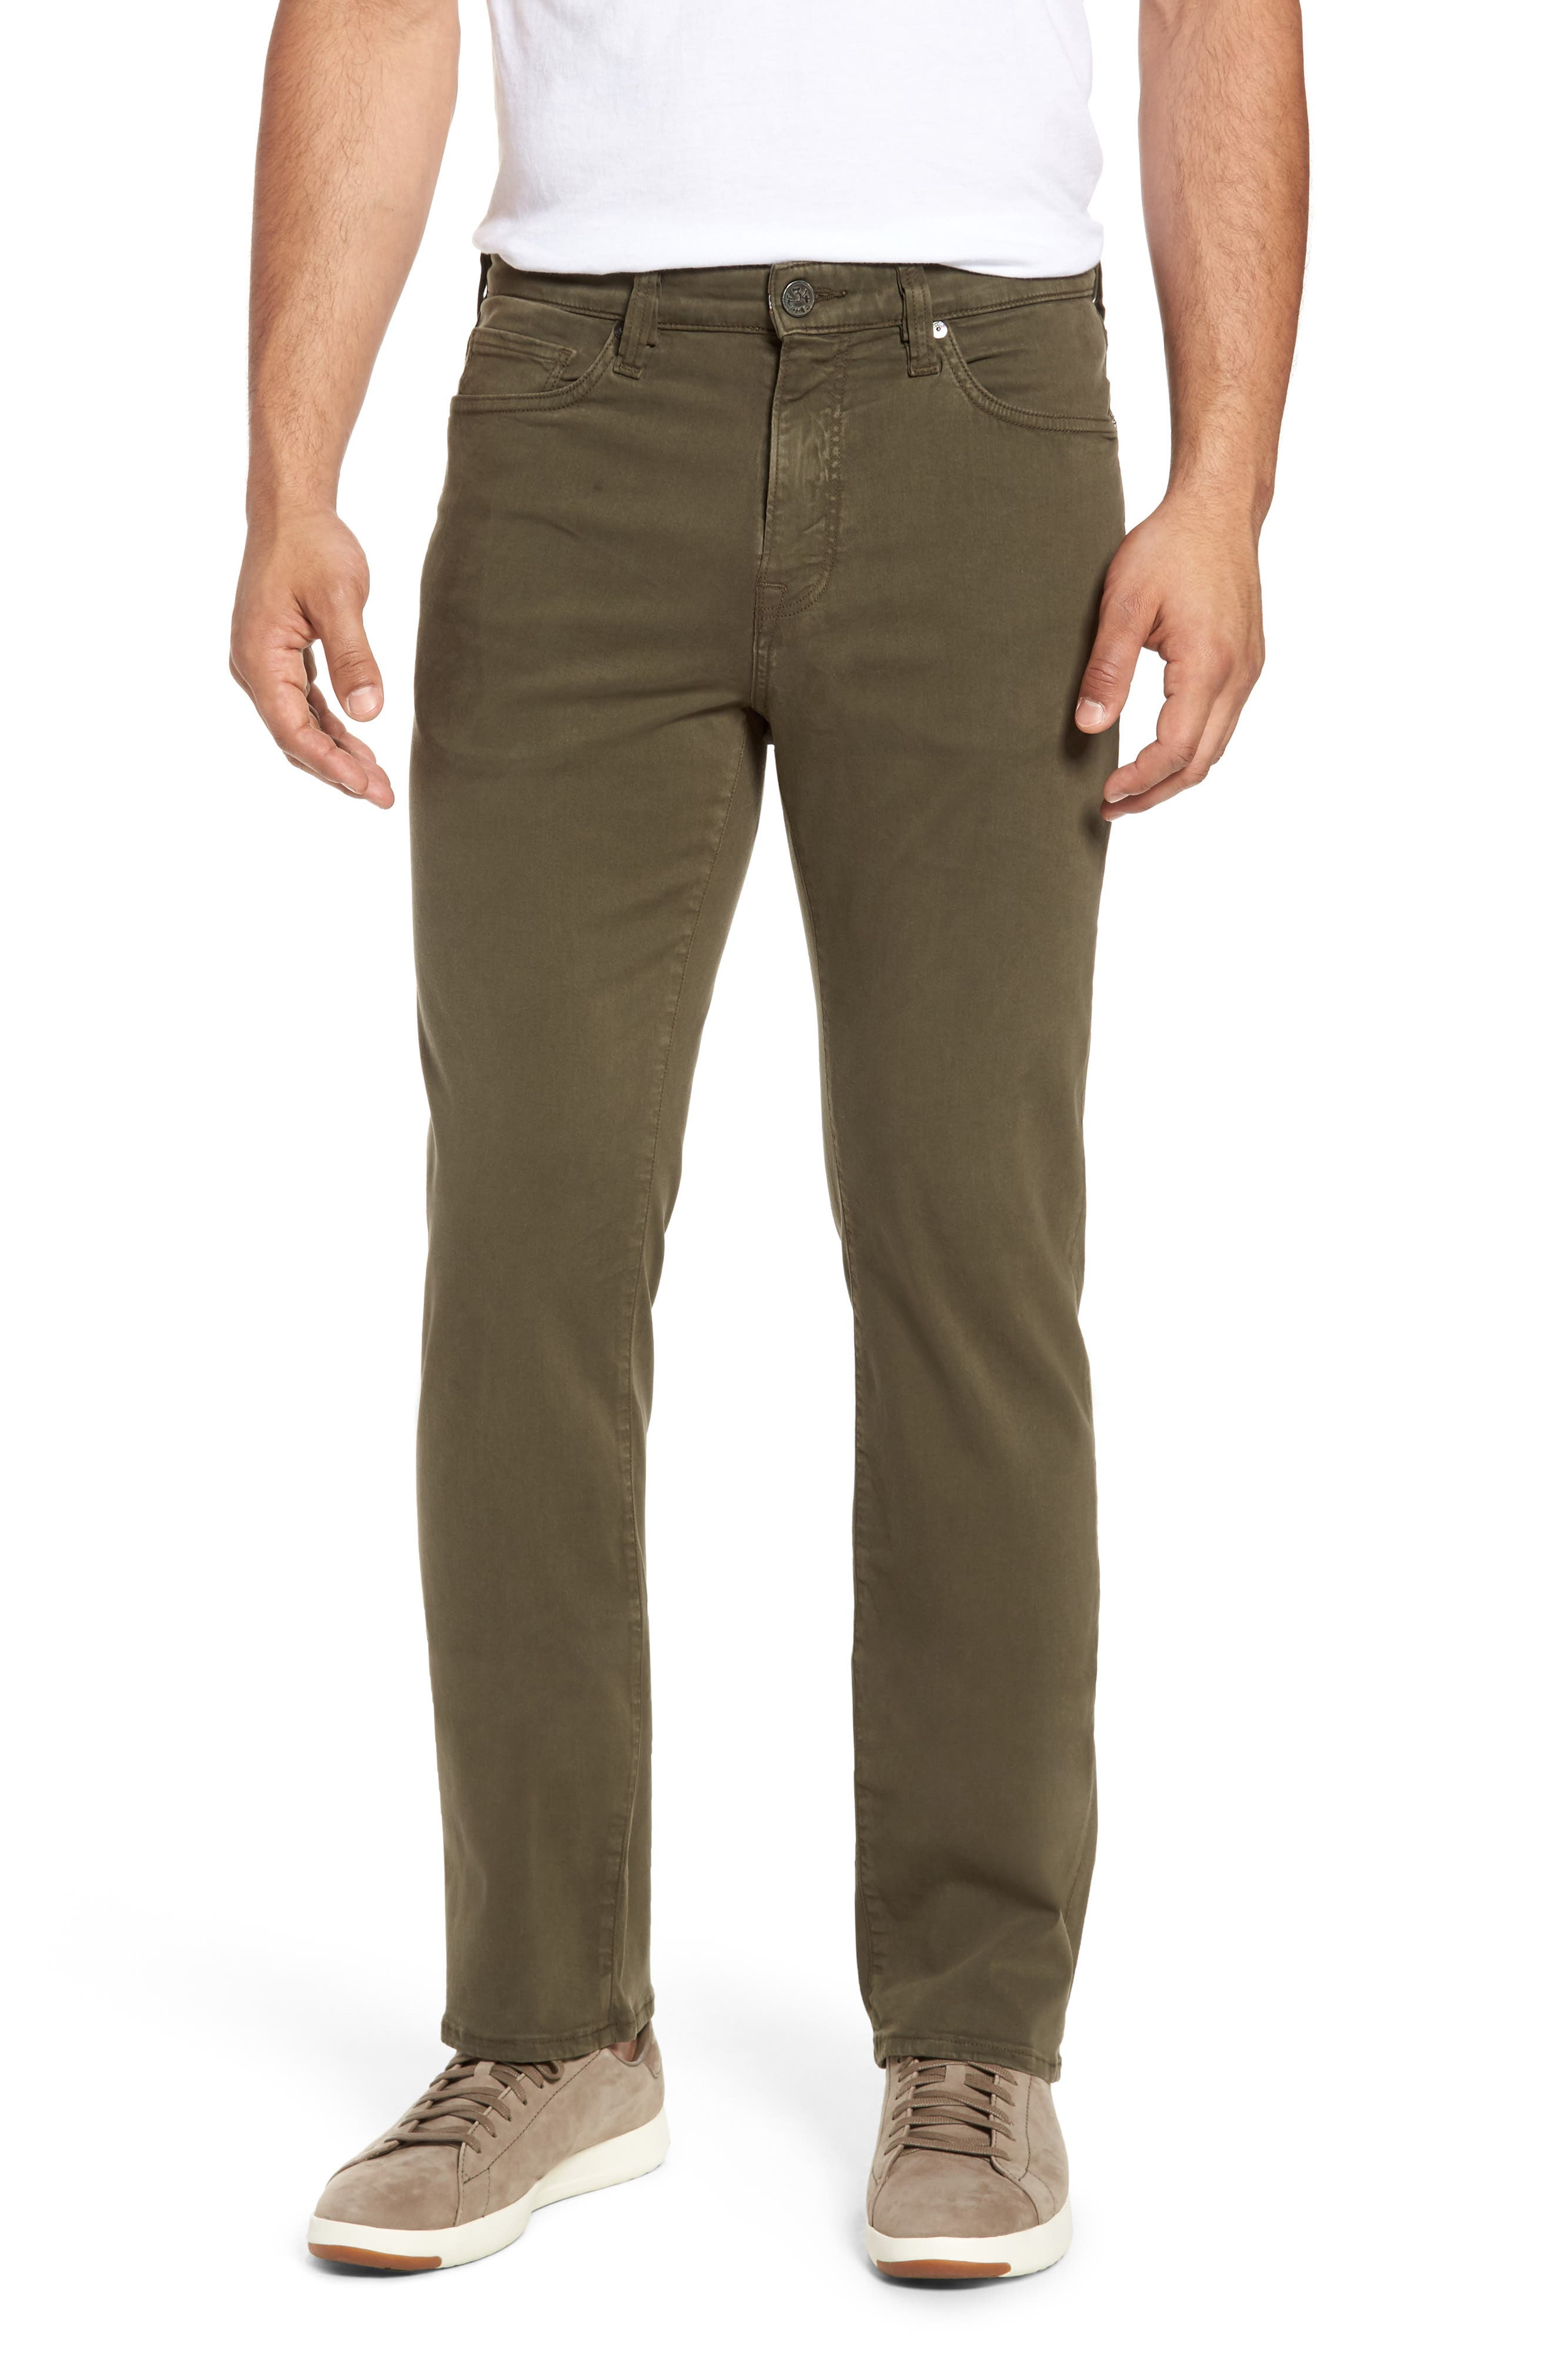 Charisma Relaxed Fit Pants,                         Main,                         color, Olive Twill